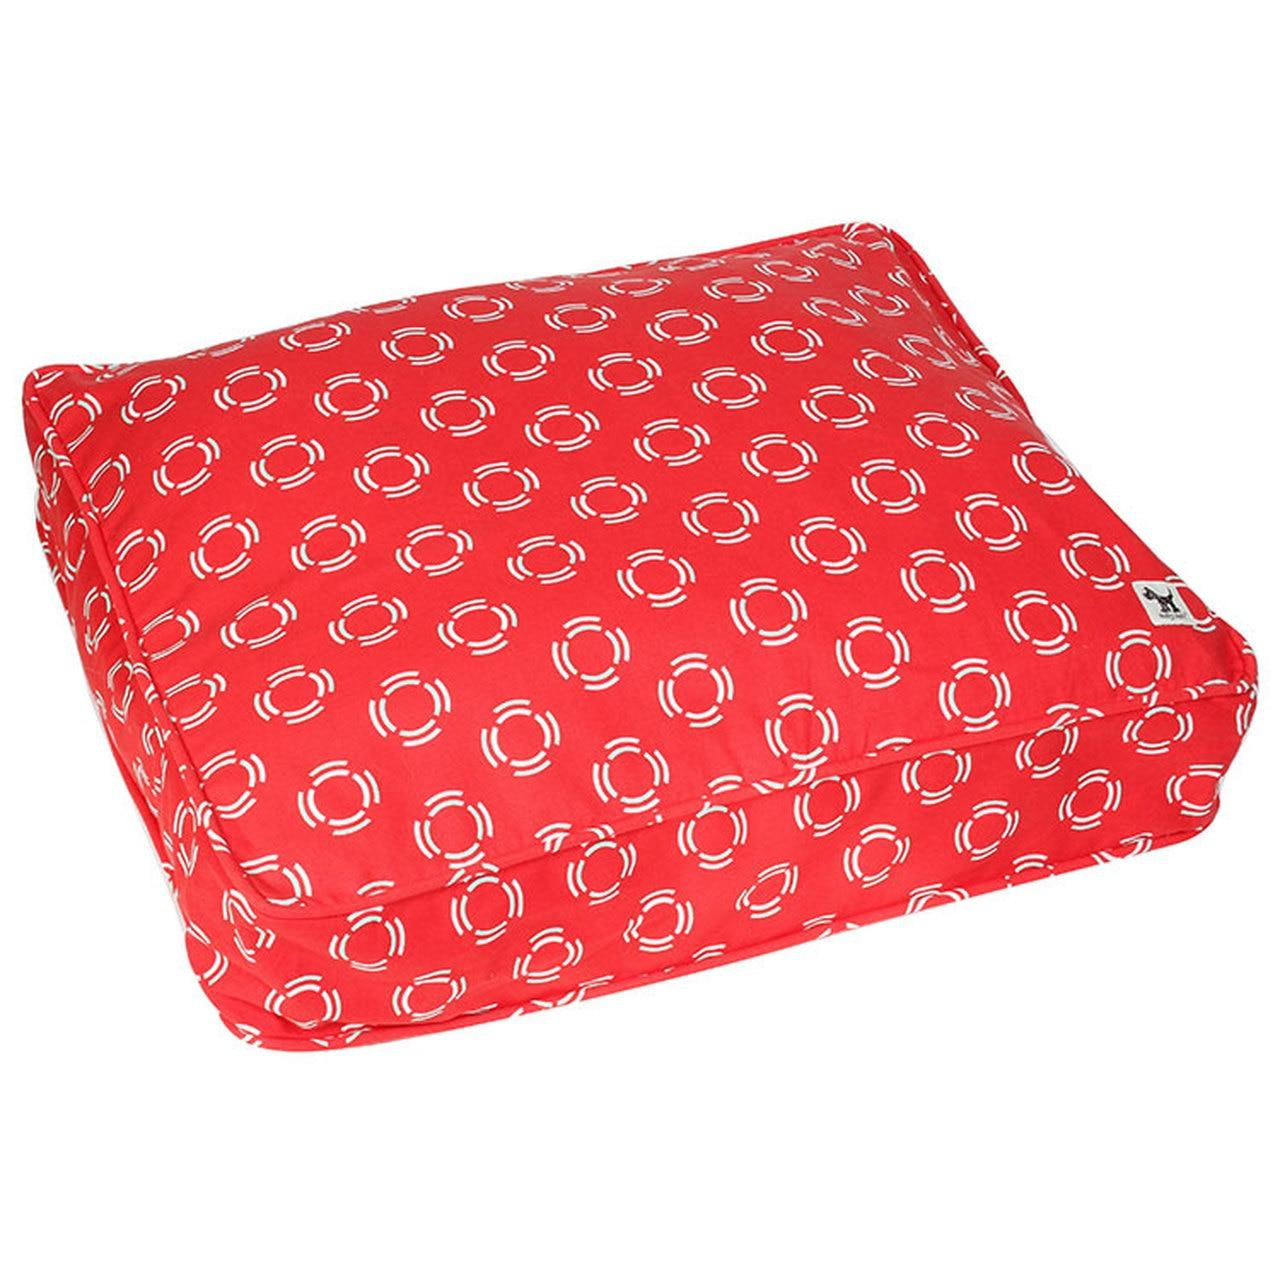 Molly Mutt Lady in Red Duvet Dog Bed, Small